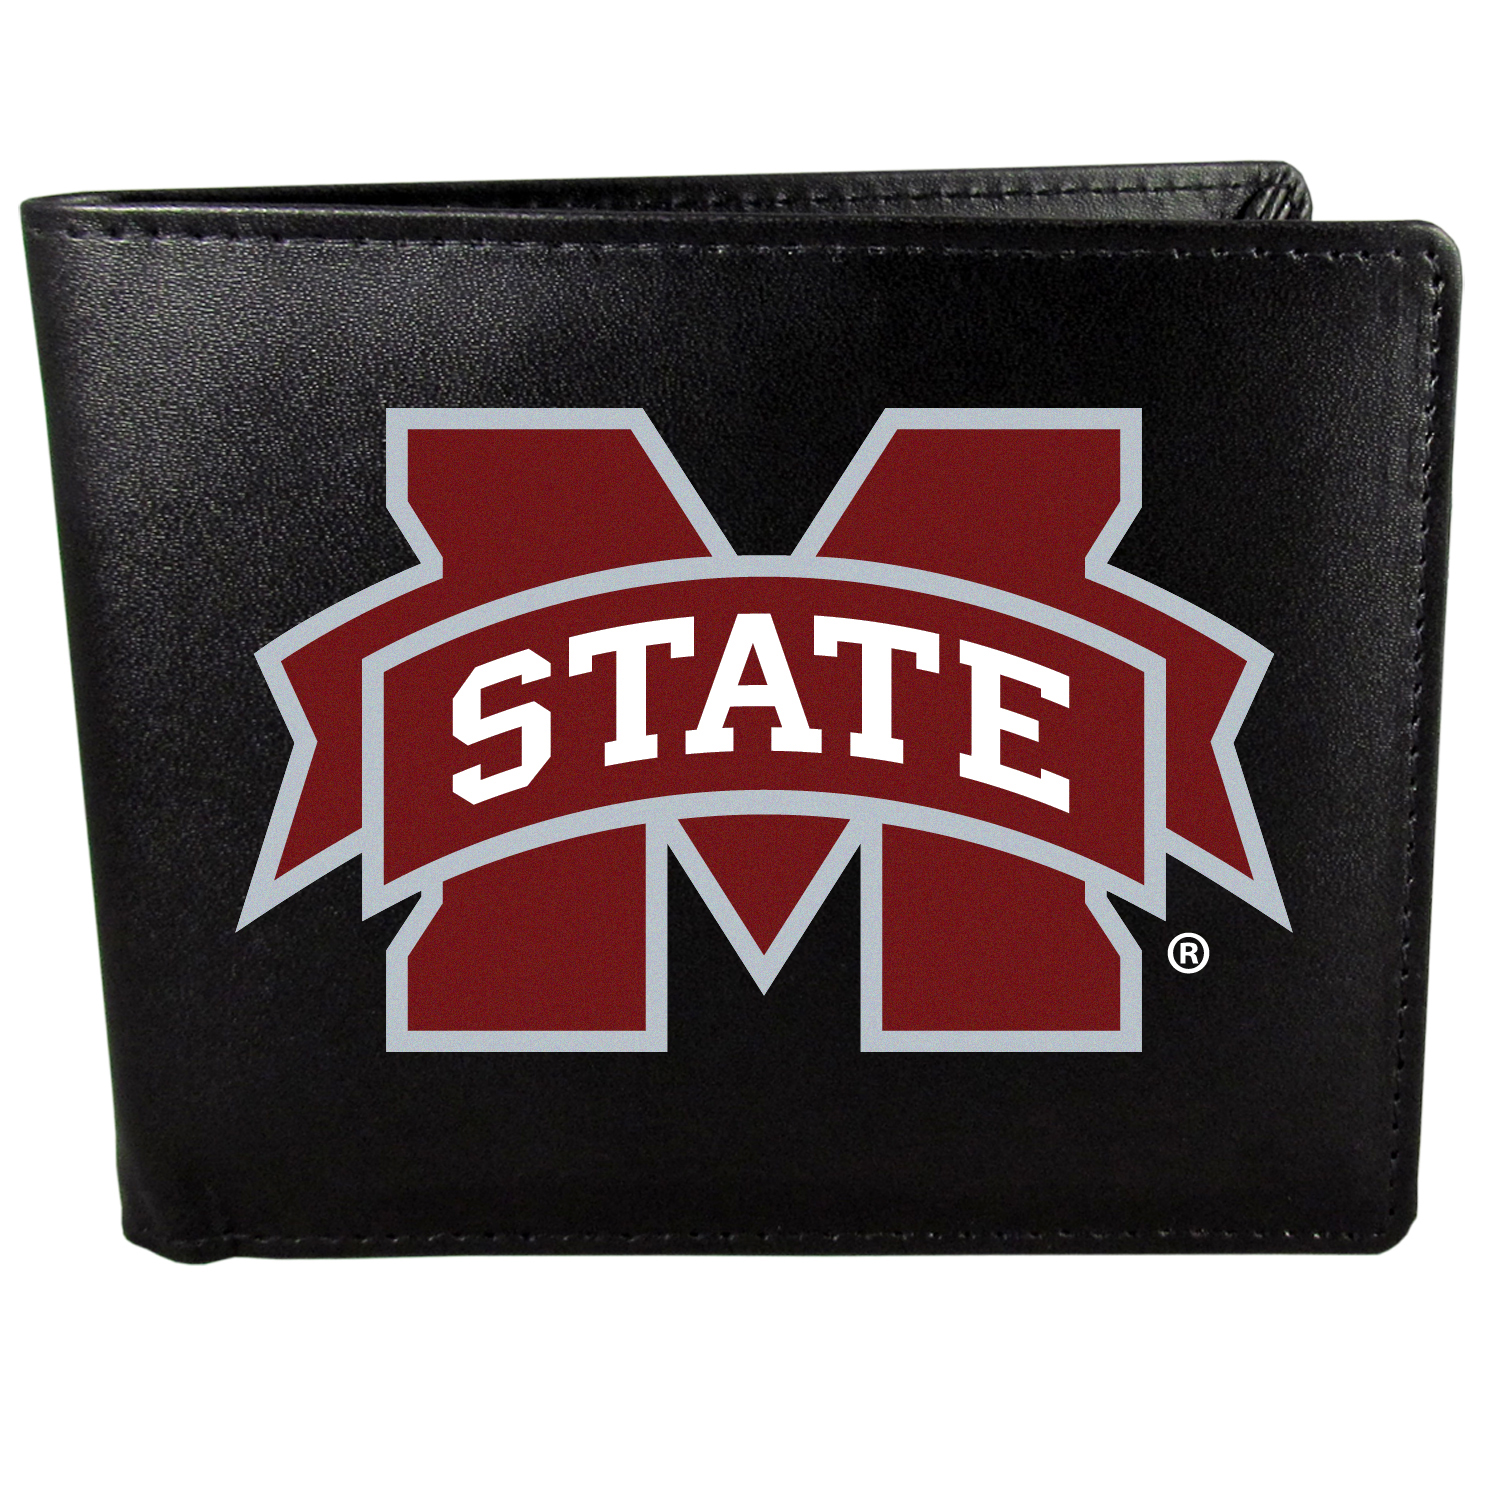 Mississippi St. Bulldogs Bi-fold Wallet Large Logo - Sports fans do not have to sacrifice style with this classic bi-fold wallet that sports the Mississippi St. Bulldogs extra large logo. This men's fashion accessory has a leather grain look and expert craftmanship for a quality wallet at a great price. The wallet features inner credit card slots, windowed ID slot and a large billfold pocket. The front of the wallet features a printed team logo.